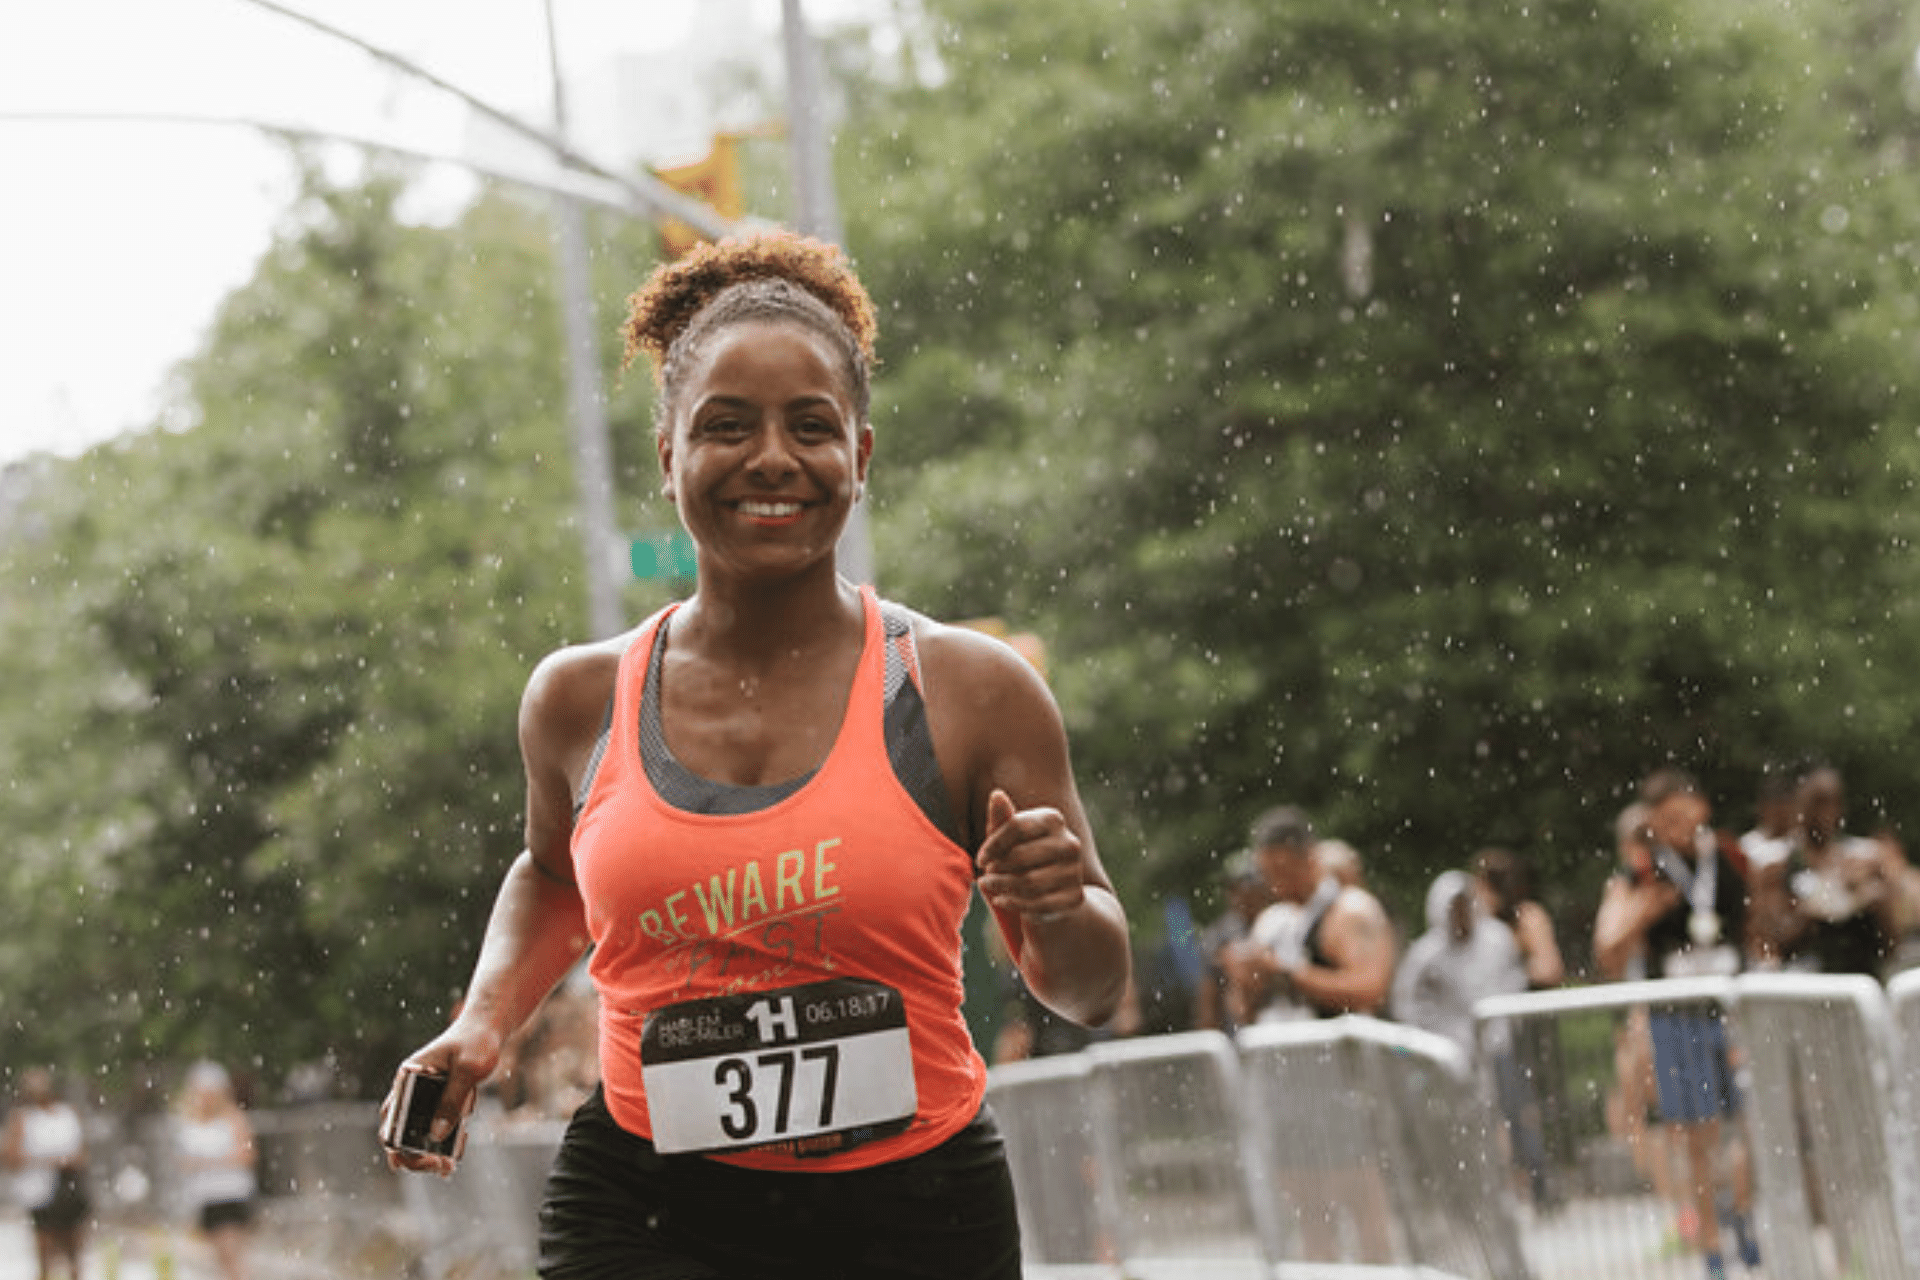 Person runs with a smile on her face